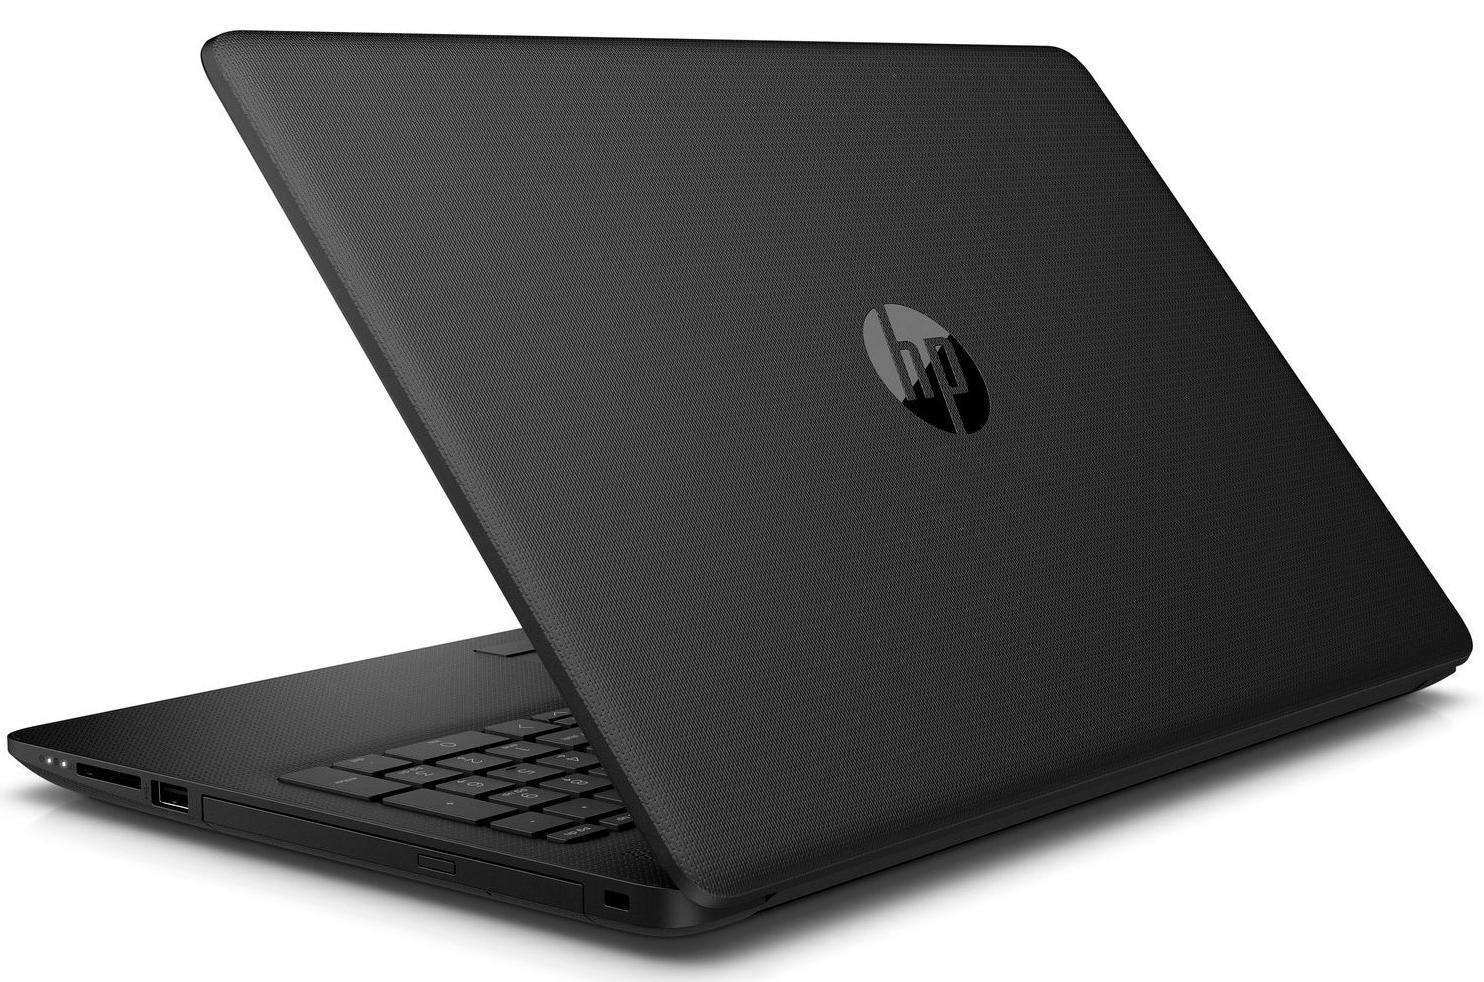 Hewlett Packard (HP) 15-da0104ng Notebook, 15.6 Zoll Full-HD, Intel Core i5-8250U, 8GB RAM, 256GB SSD, DVD-Brenner, Windows 10